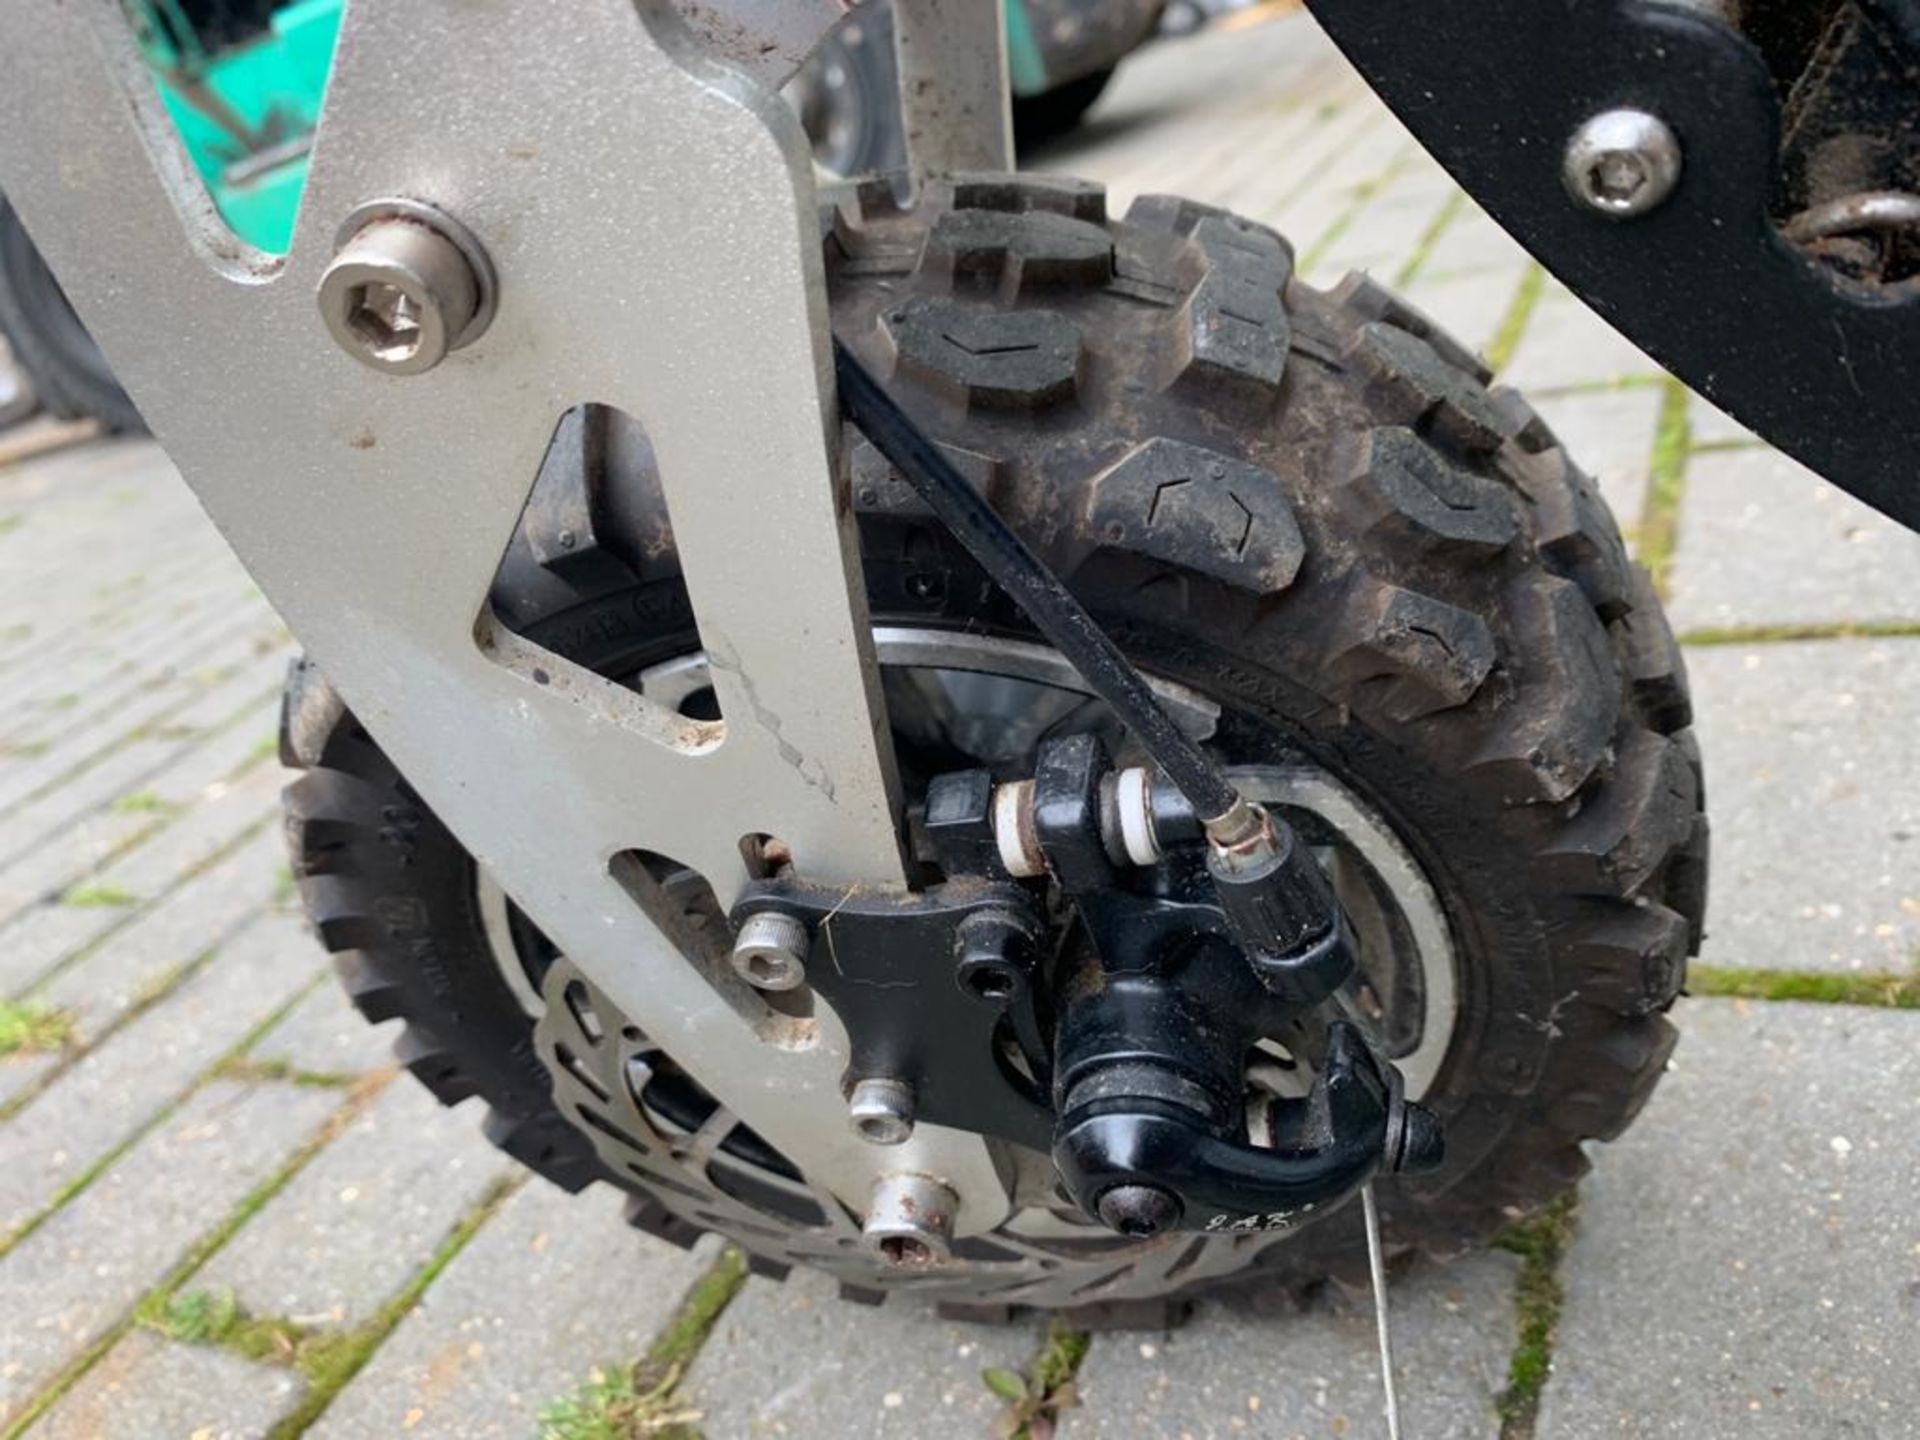 2-STROKE RIDE ON SCOOTER, RUNS AND DRIVES AS IT SHOULD *PLUS VAT* - Image 3 of 8